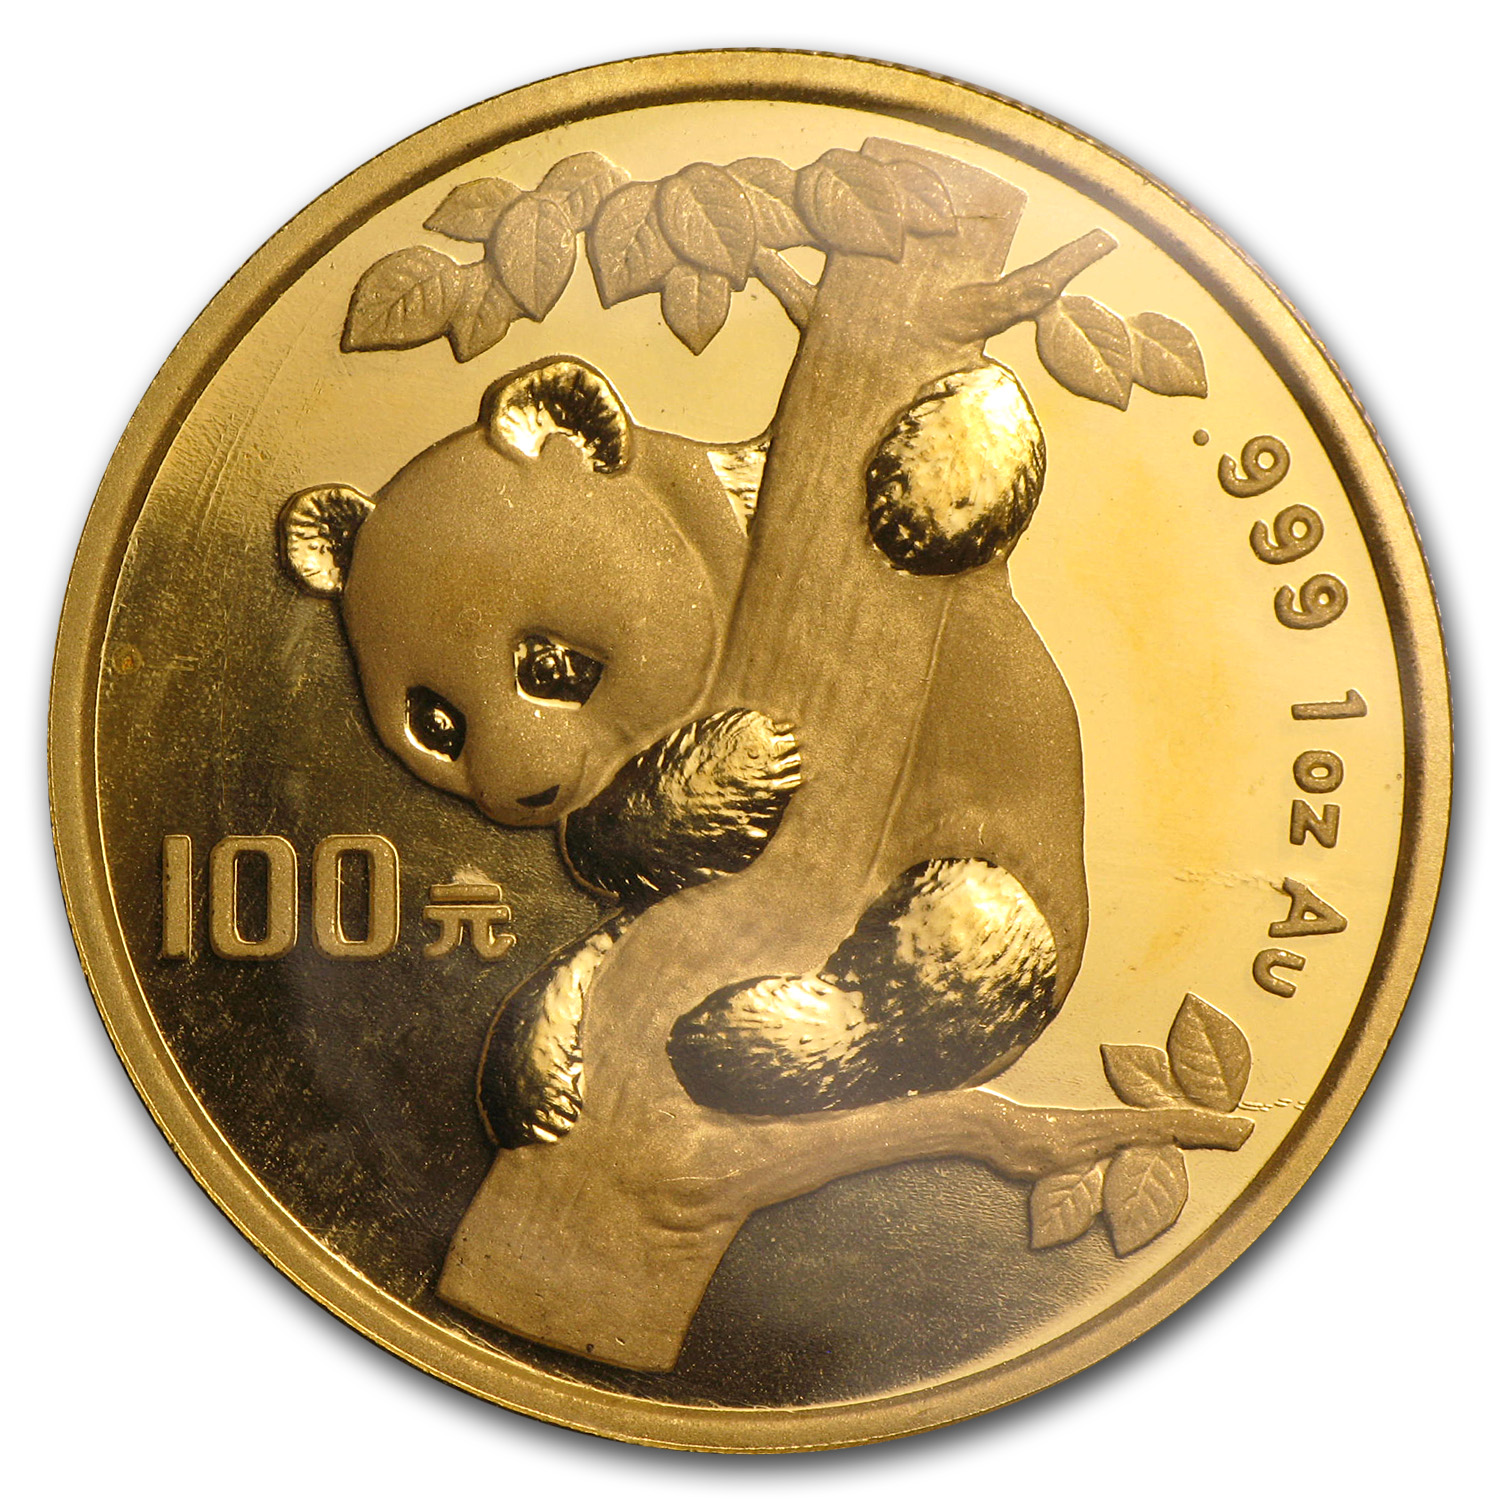 1996 1 oz Gold Chinese Panda Large Date BU (Sealed)